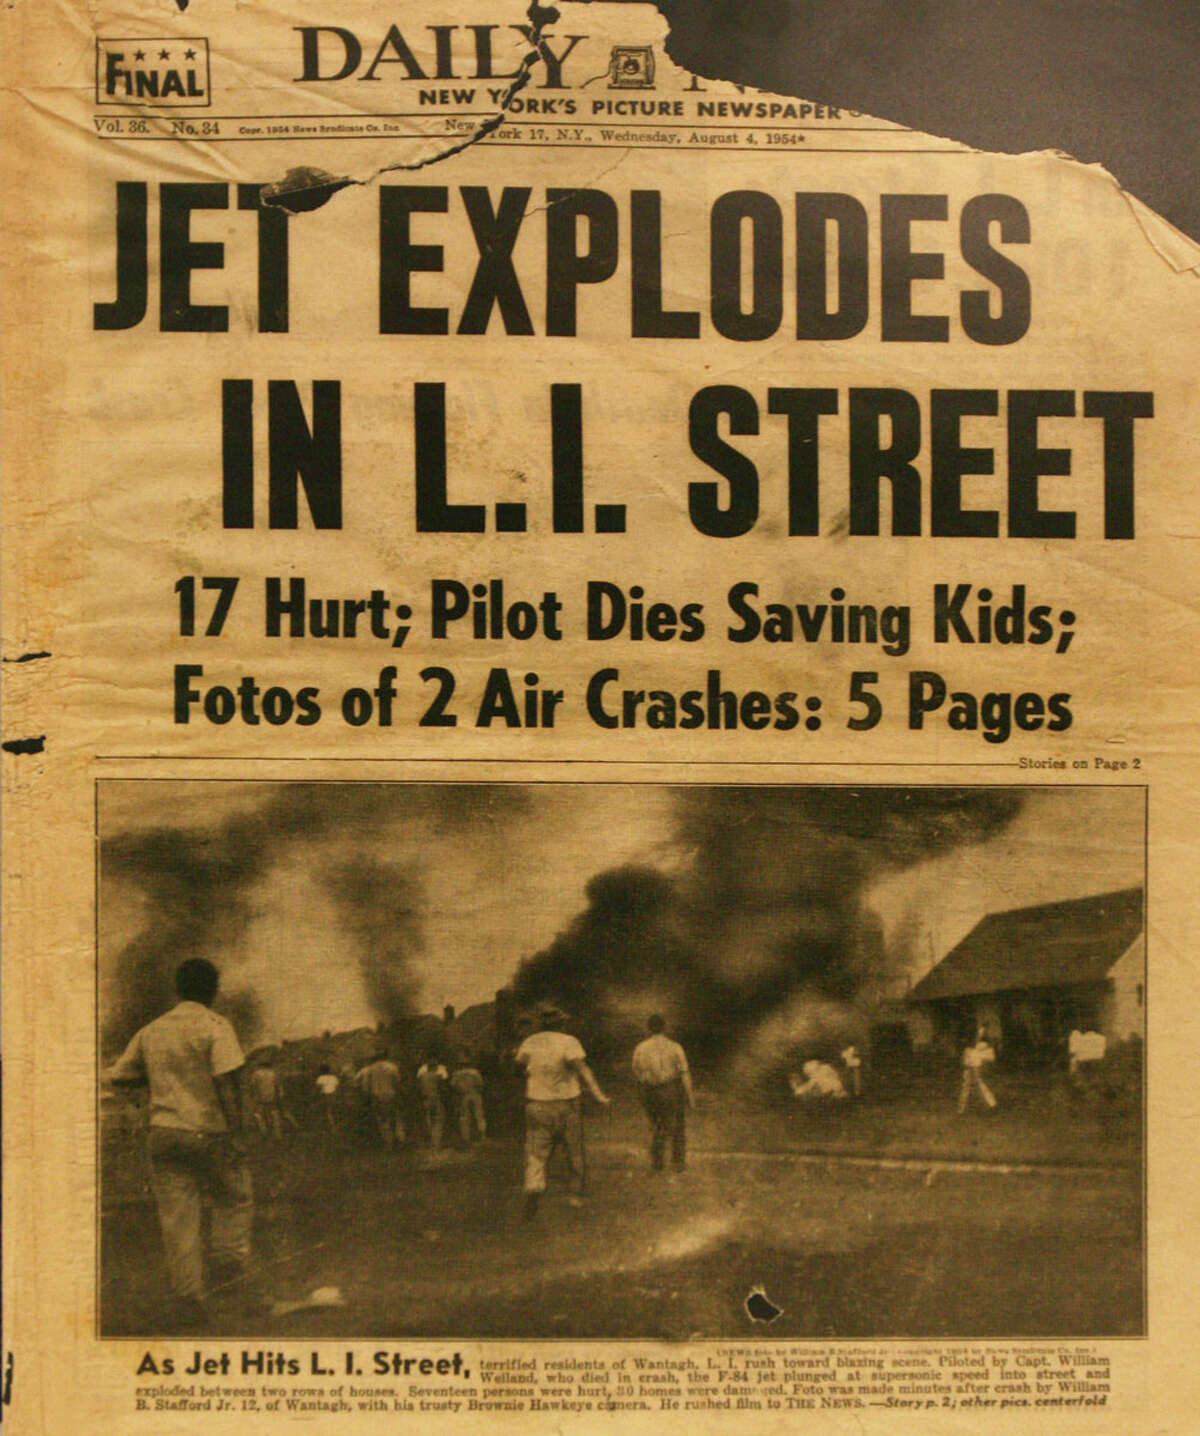 The front page of the New York Daily News on Aug. 4, 1954, with the plane-crash photo that launched Bill Stafford's photography avocation. He was 12 years old.